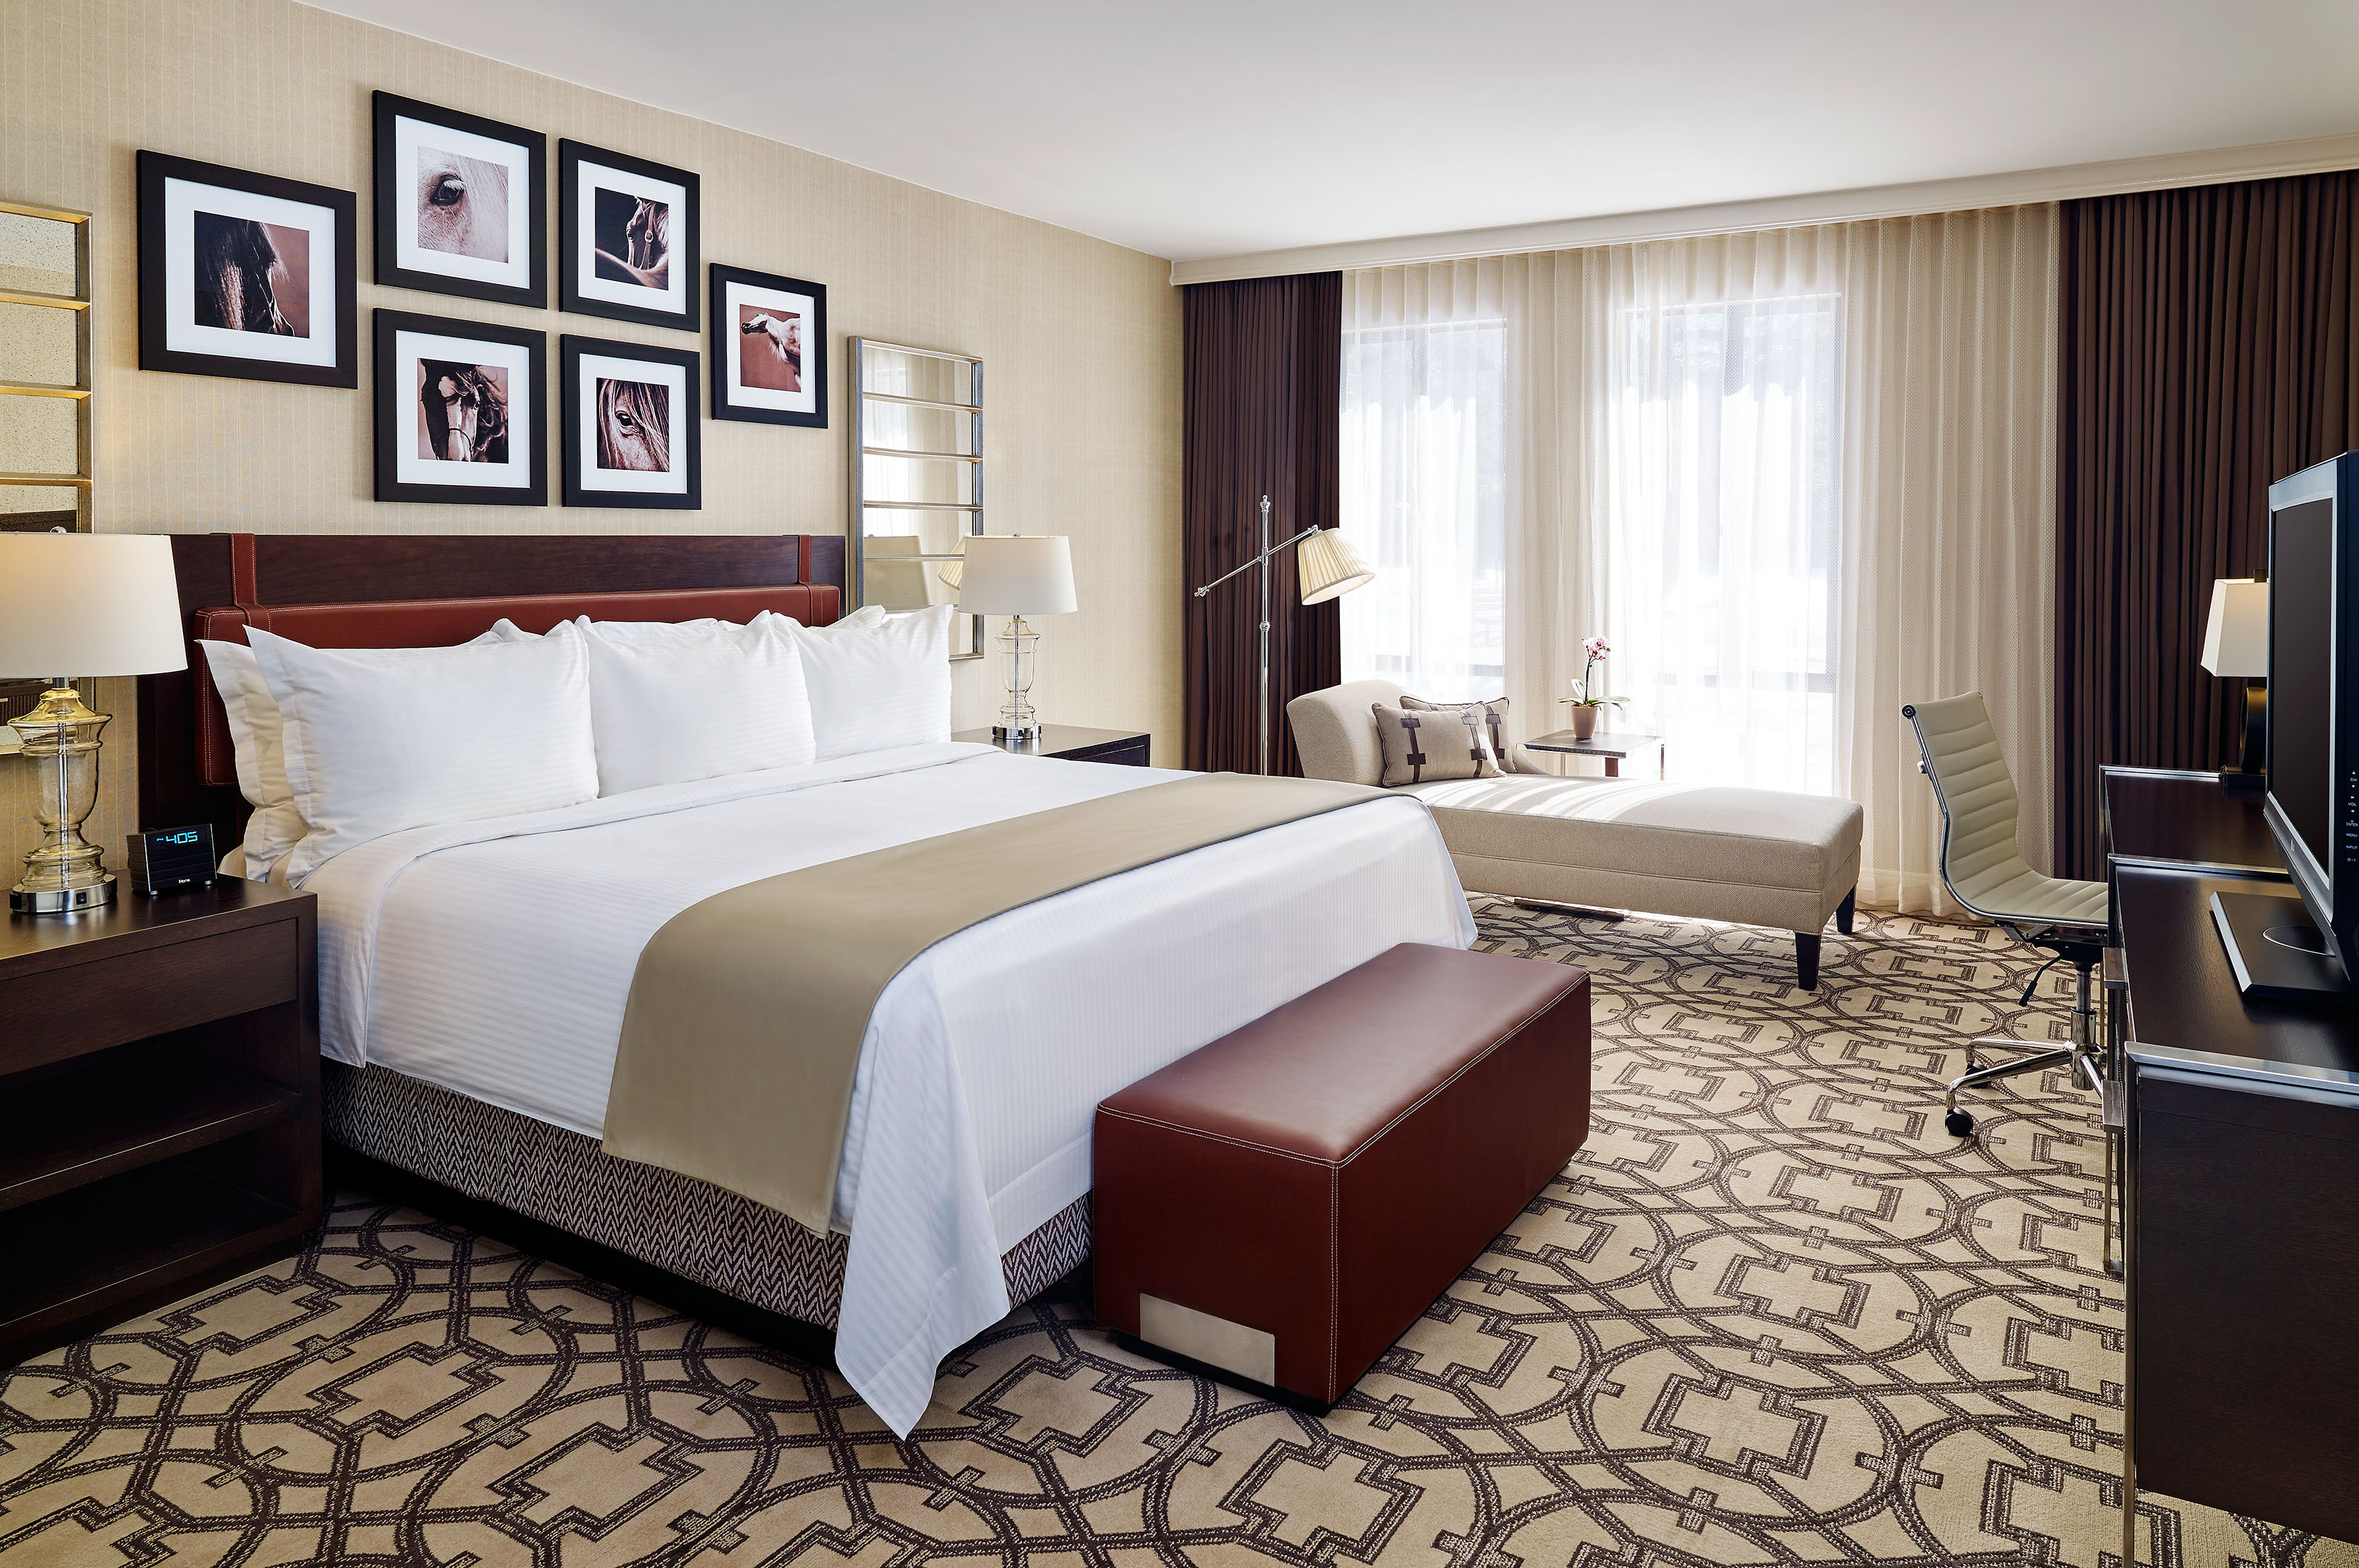 Hunt Valley Inn Introduces Delta Hotels By Marriott As Part Of Strategic Brand Expansion